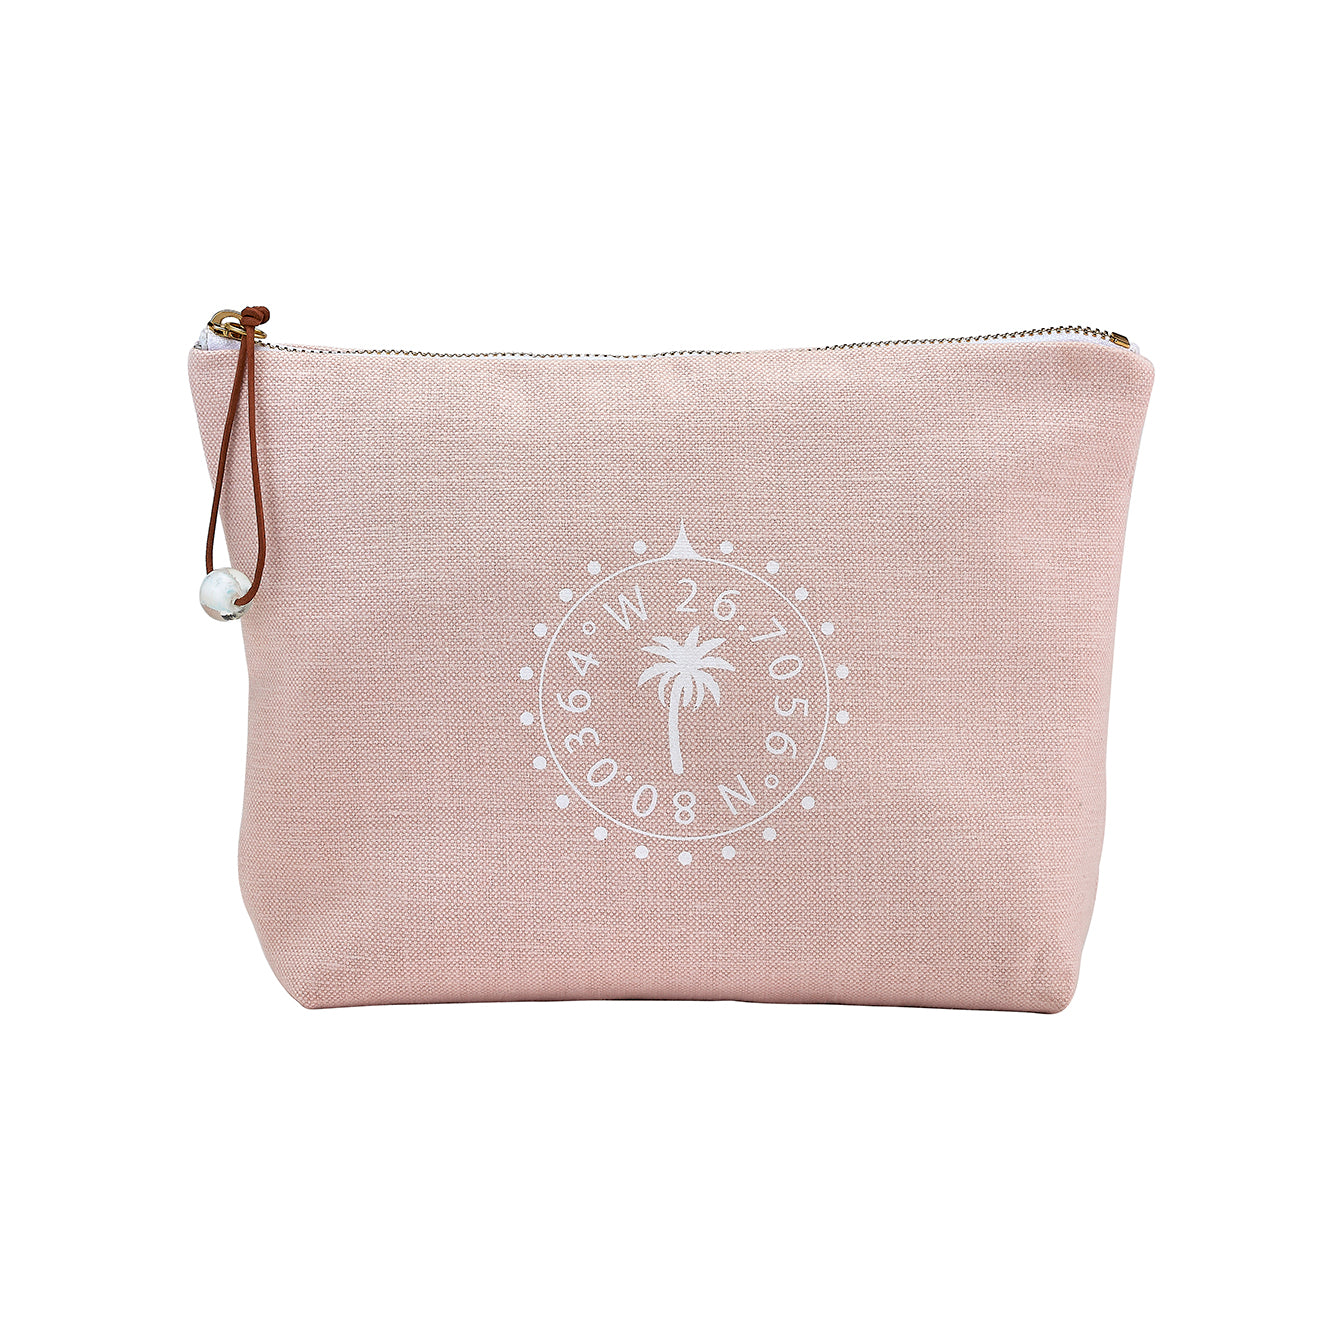 Palm Beach Travel Pouch